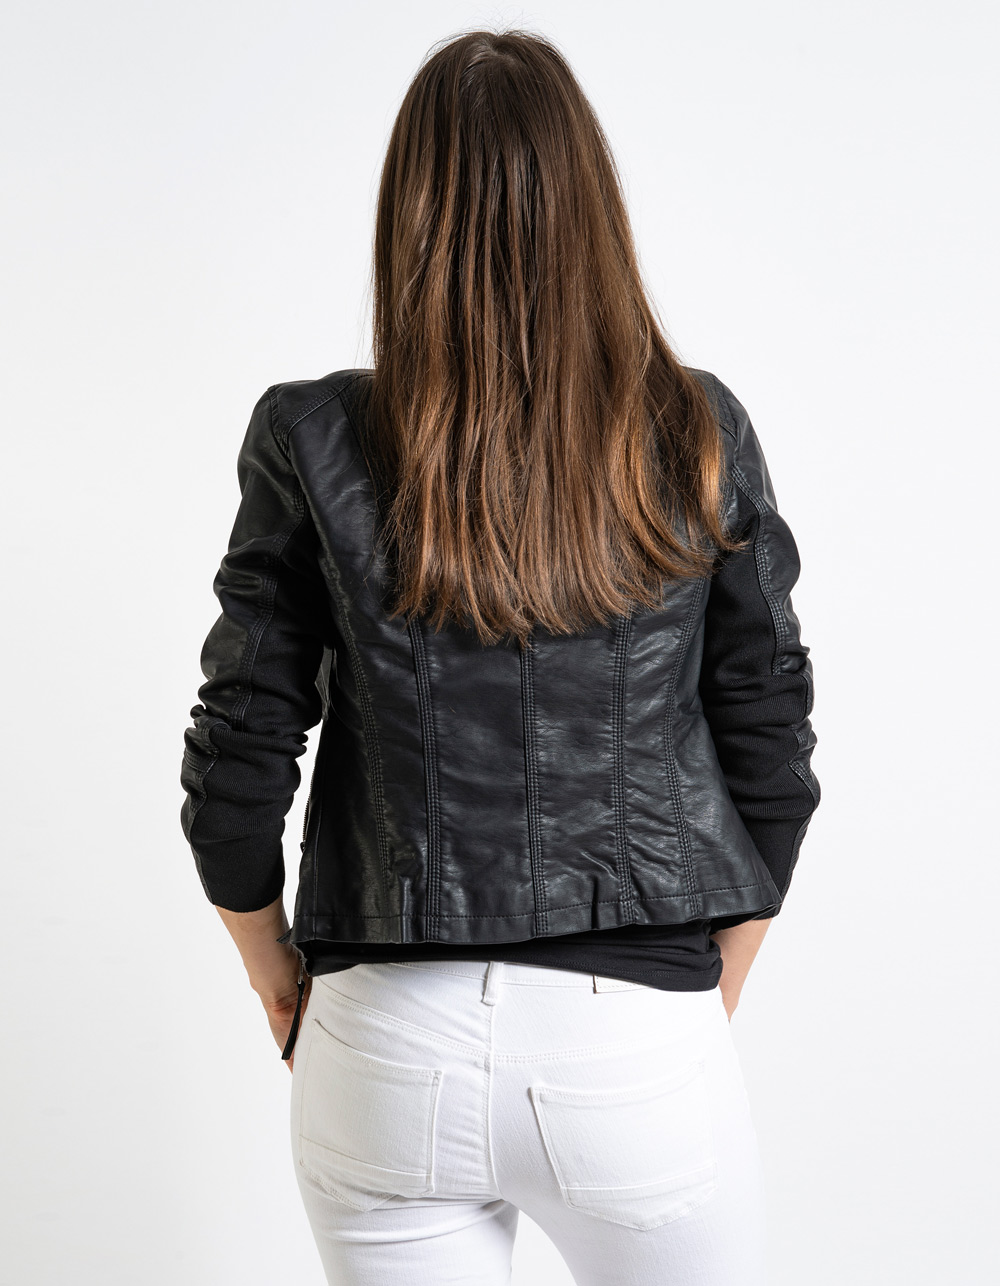 Cazadora biker - Backside